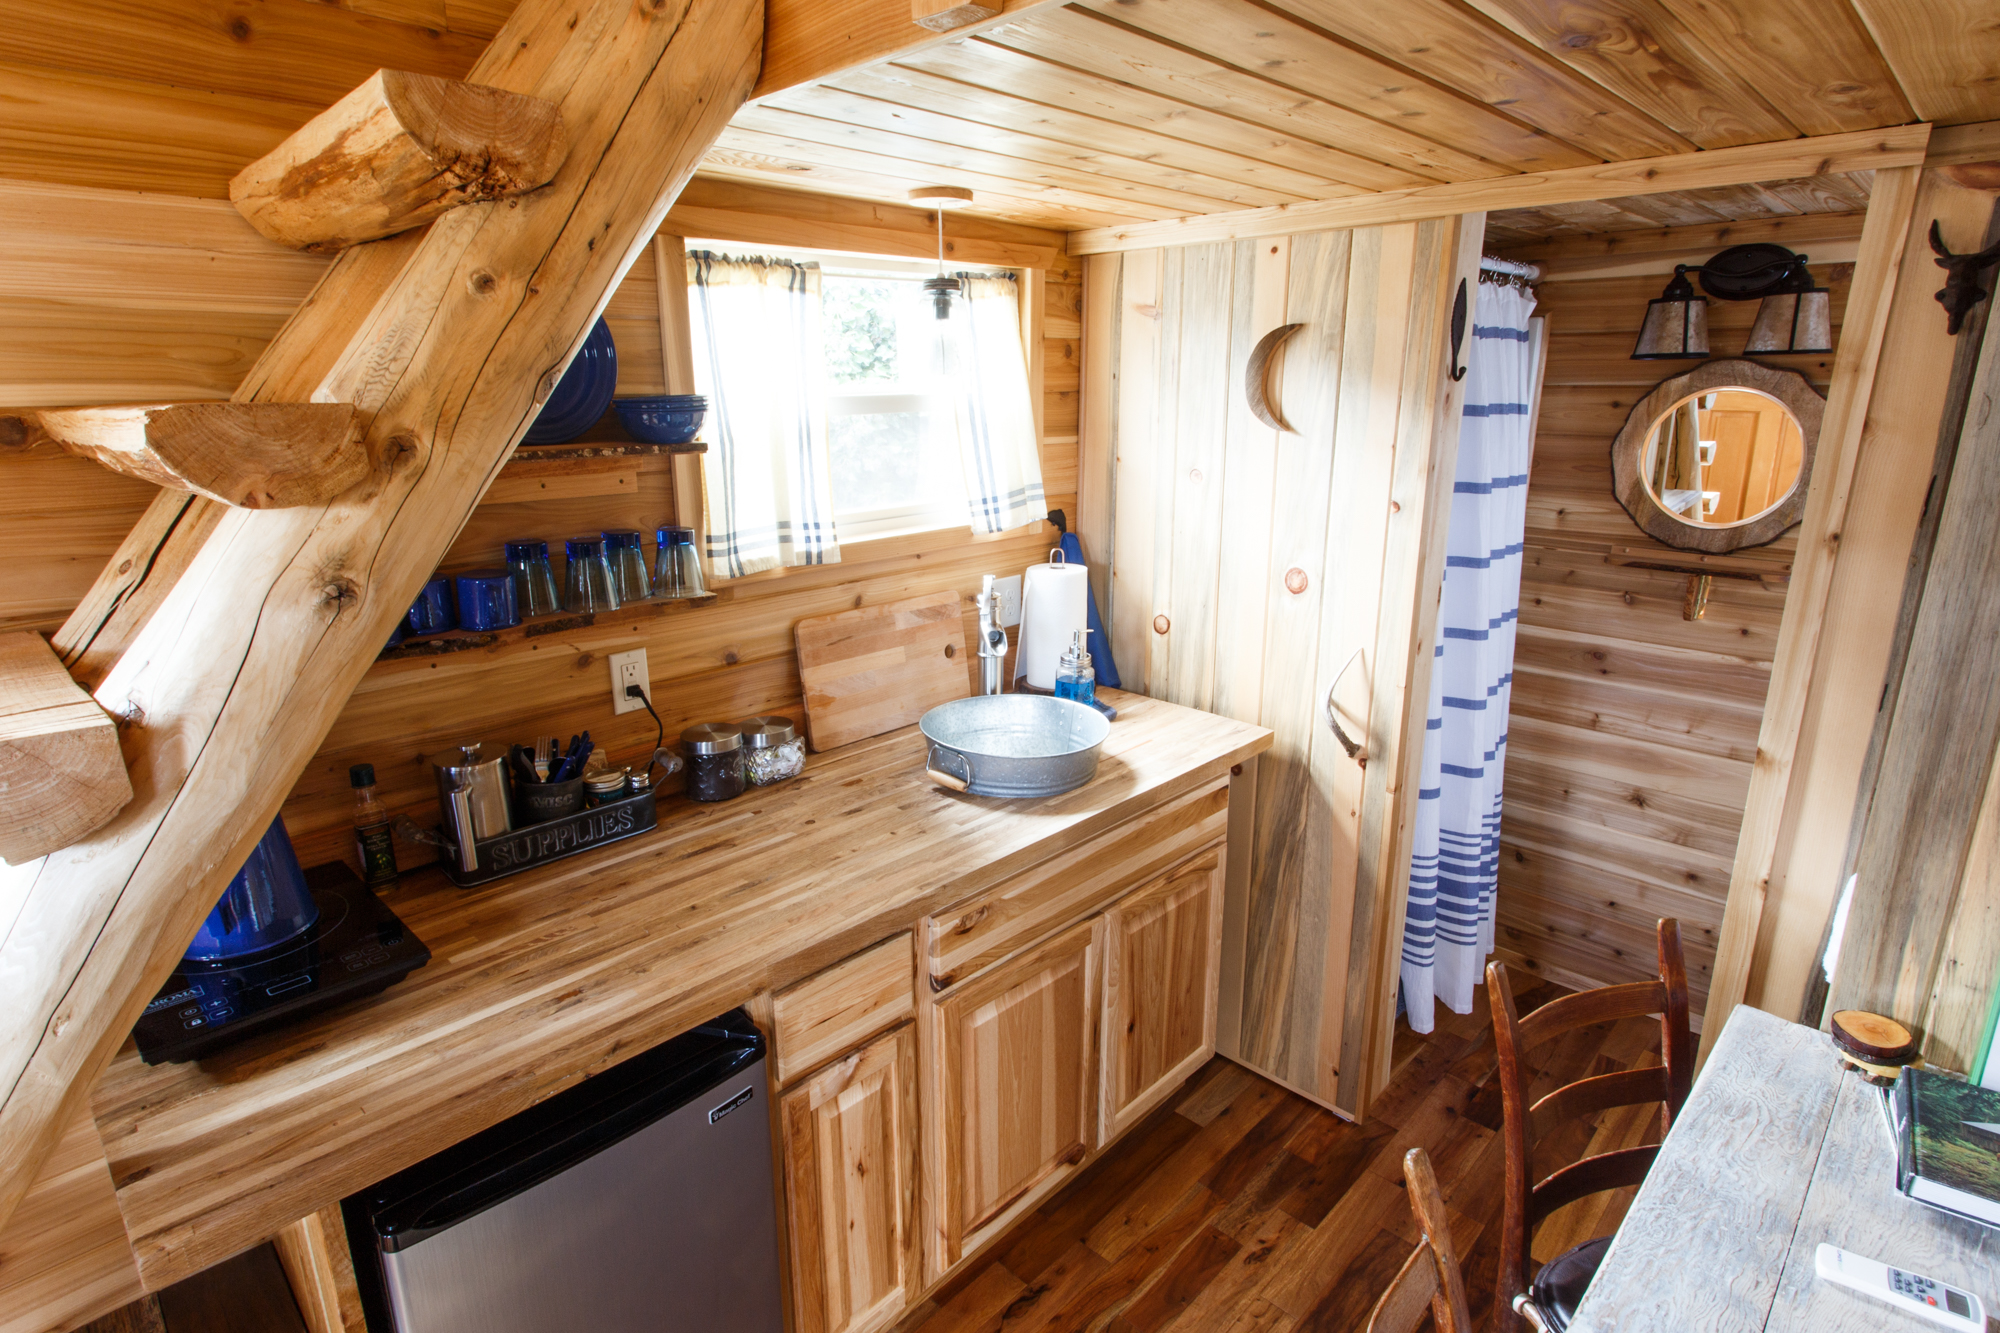 tiny home kitchen portland oregon - Tiny Home Kitchen Design